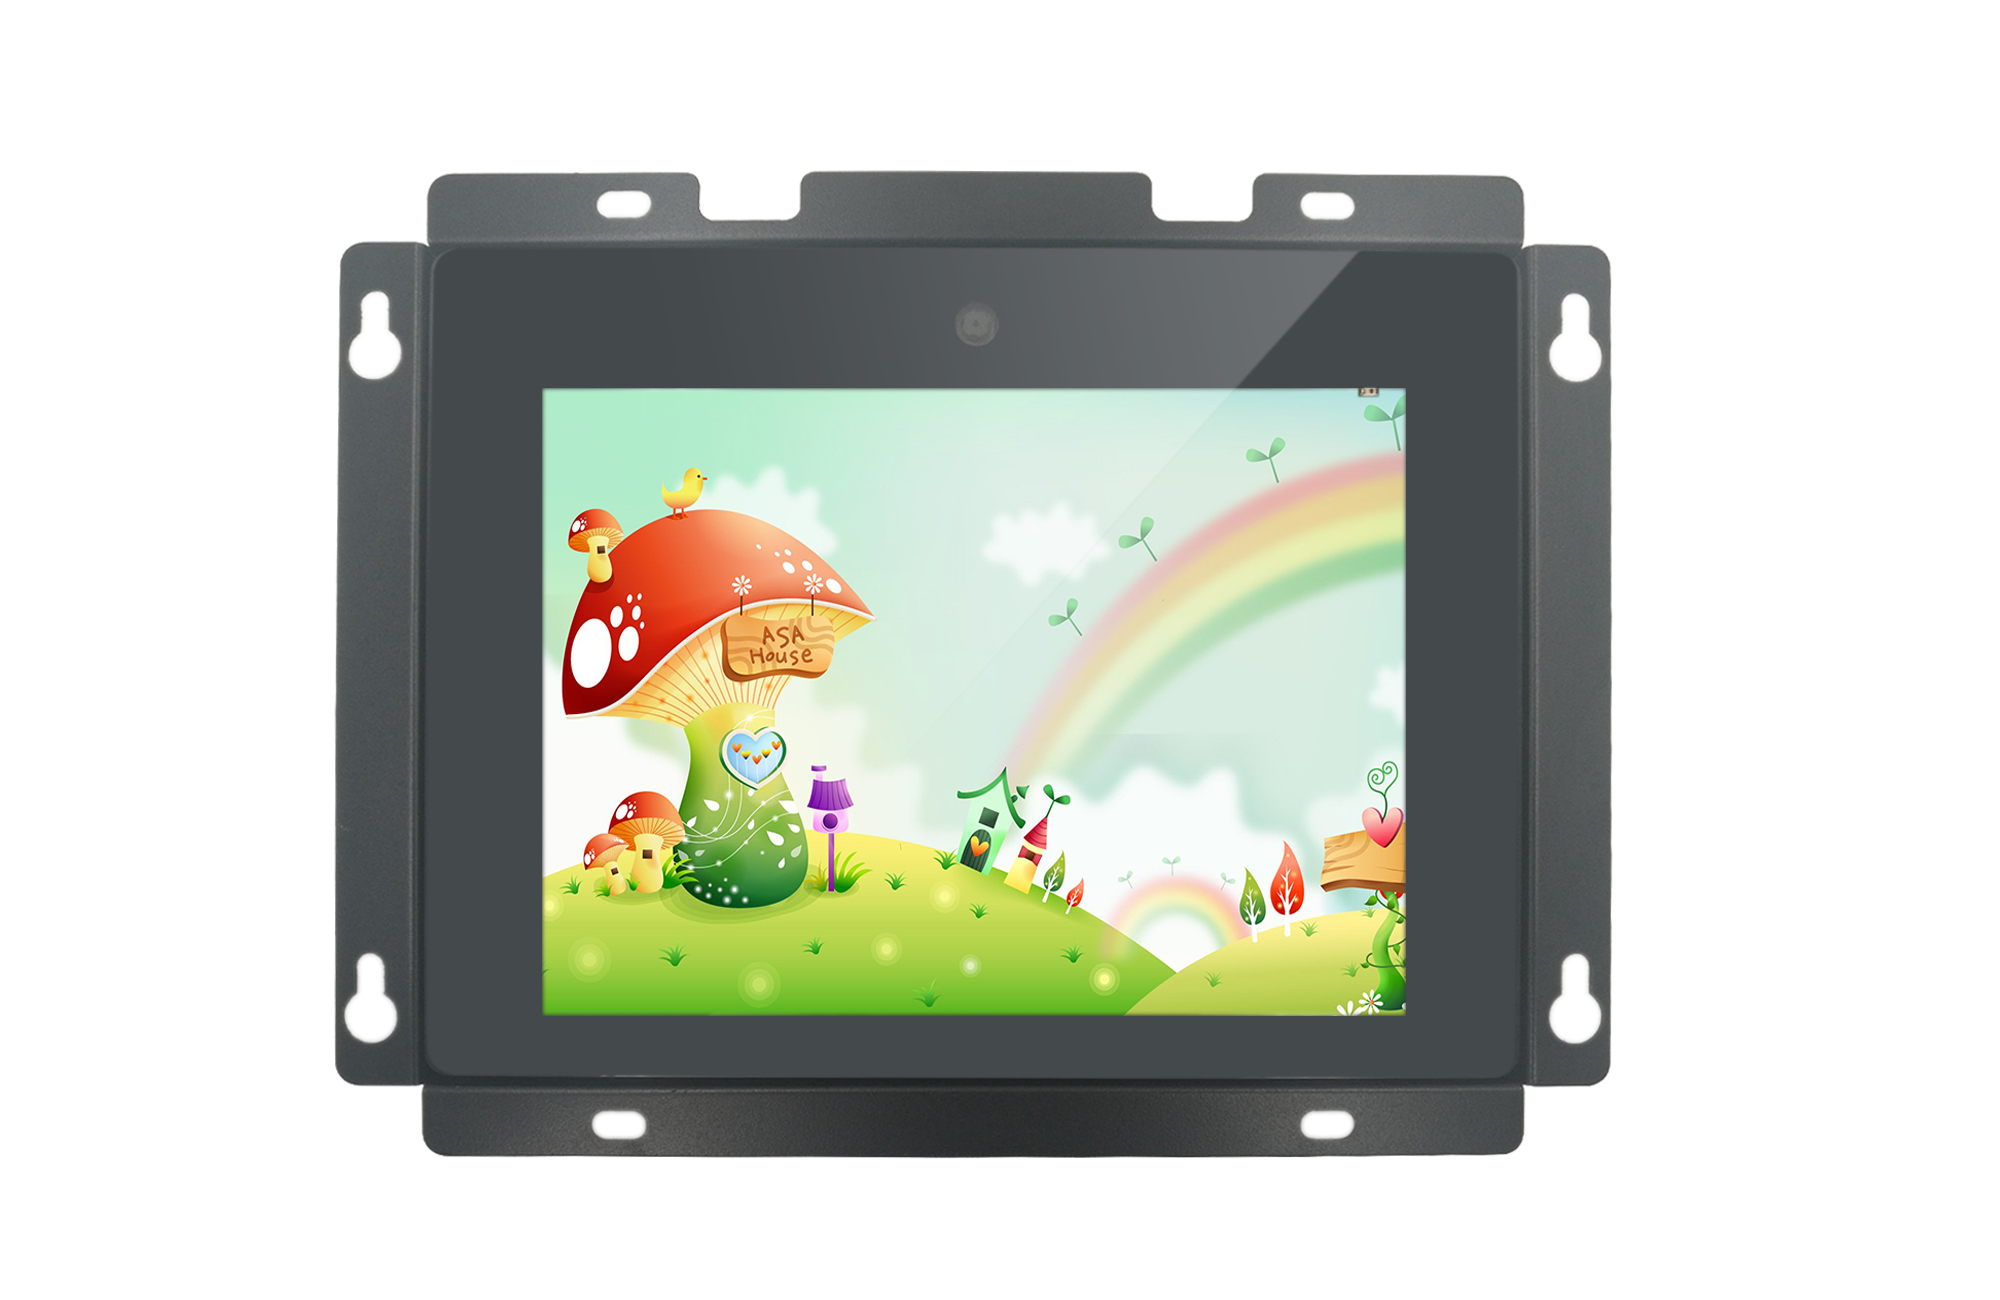 8.4 Inch Android Based All -In -One Panel PC